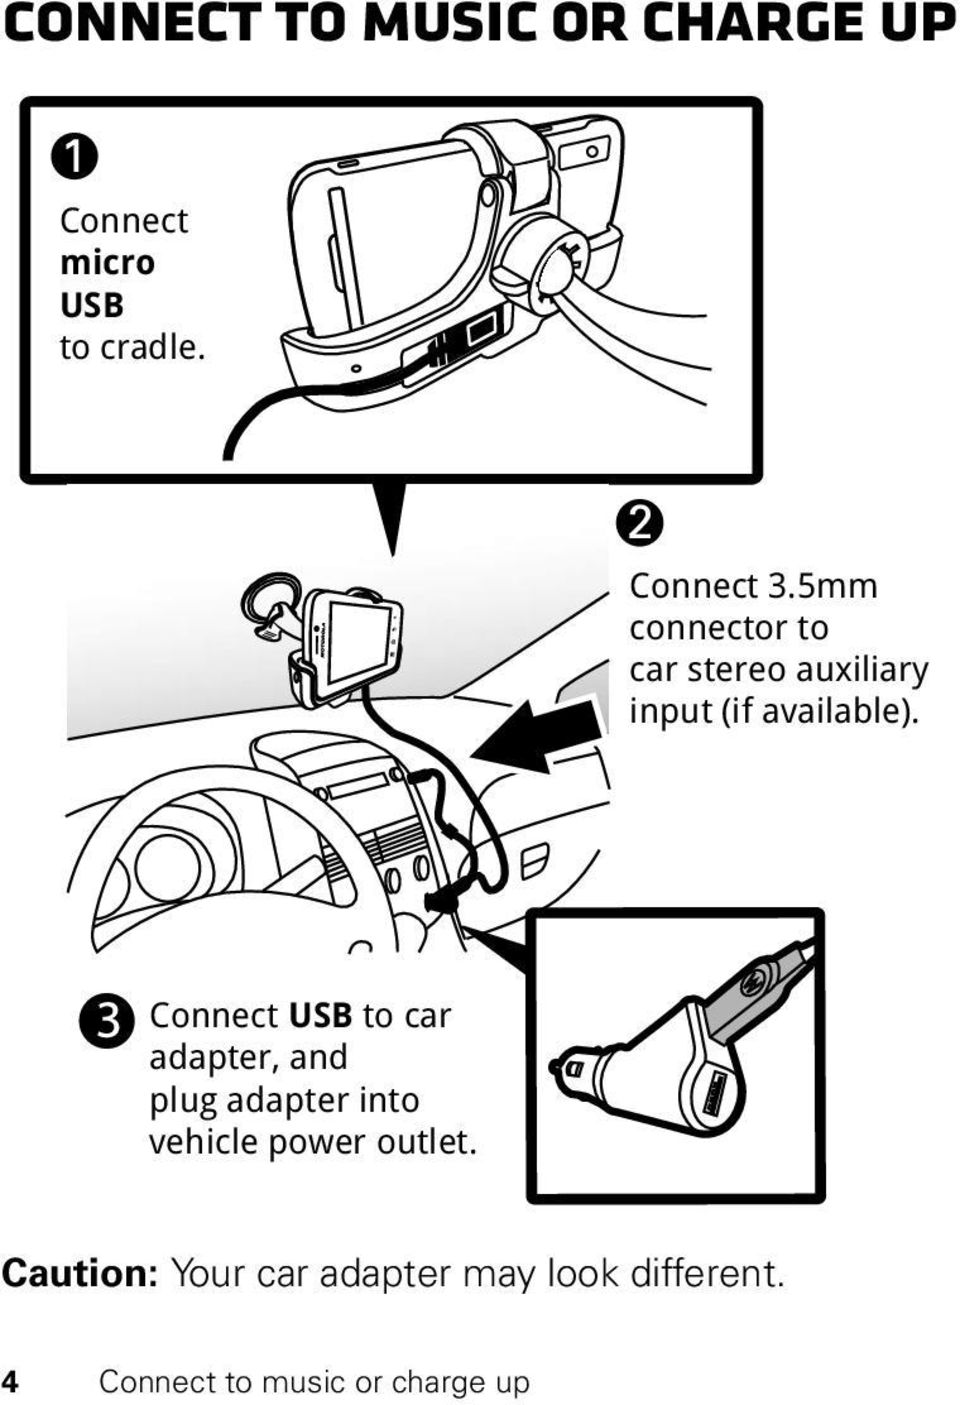 Connect USB to car adapter, and plug adapter into vehicle power